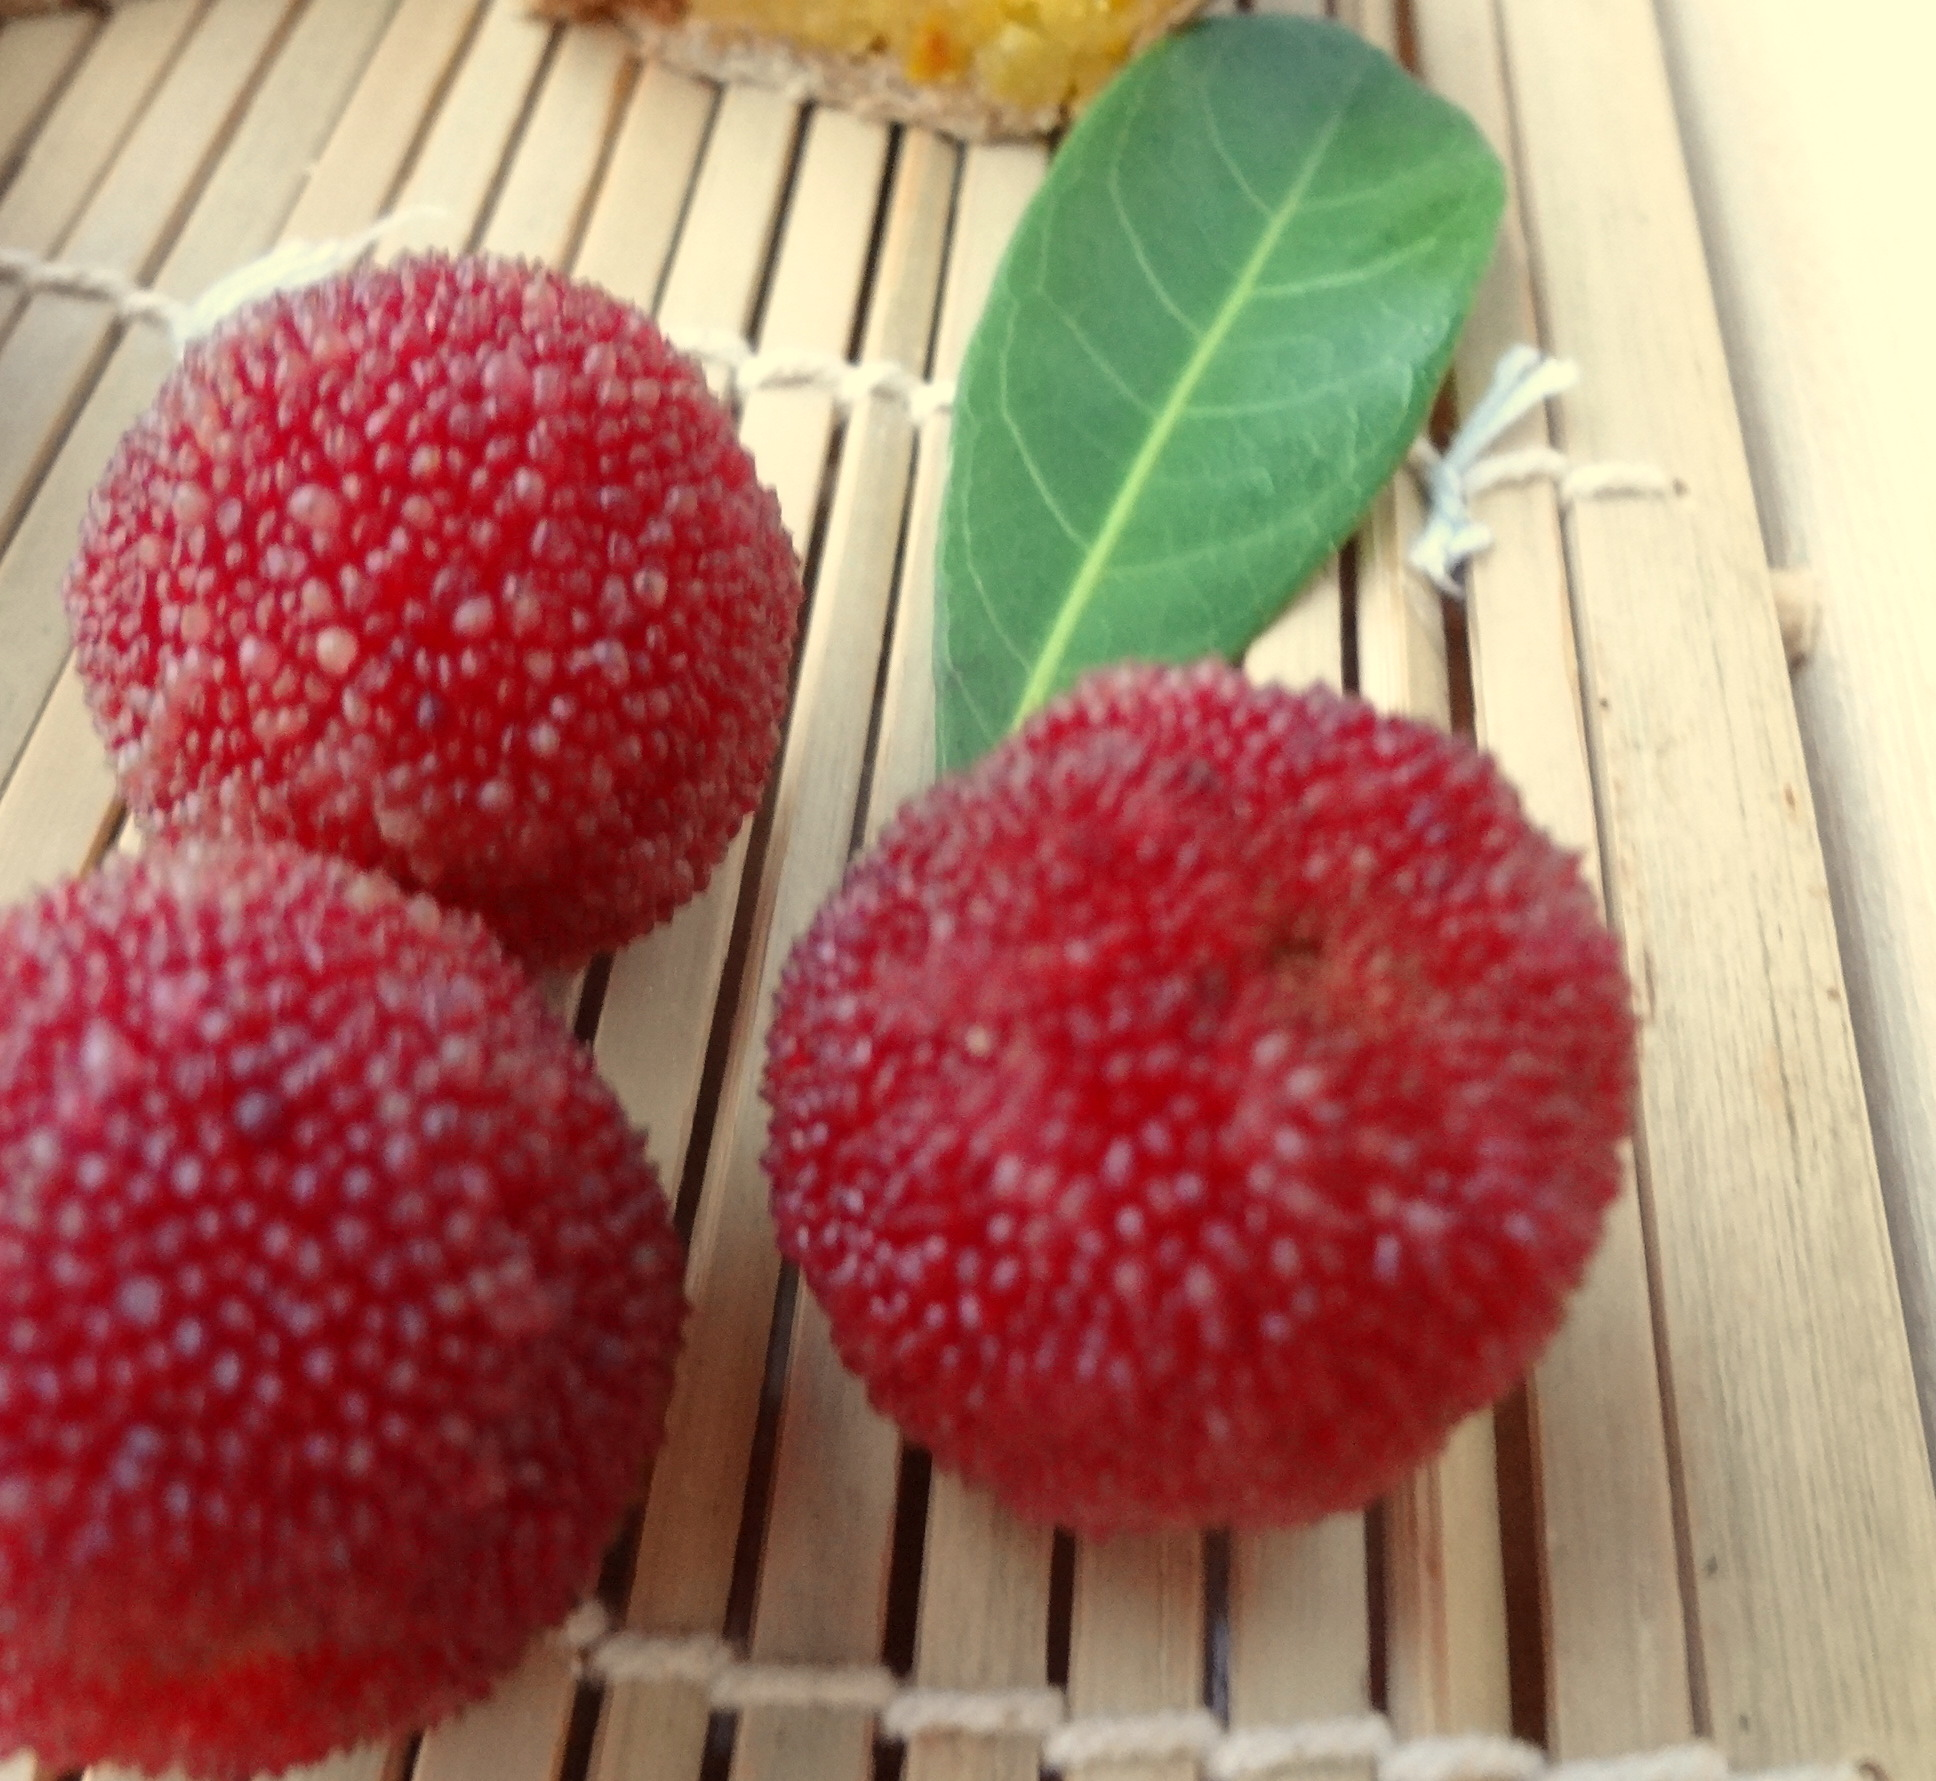 how to eat chinese bayberry